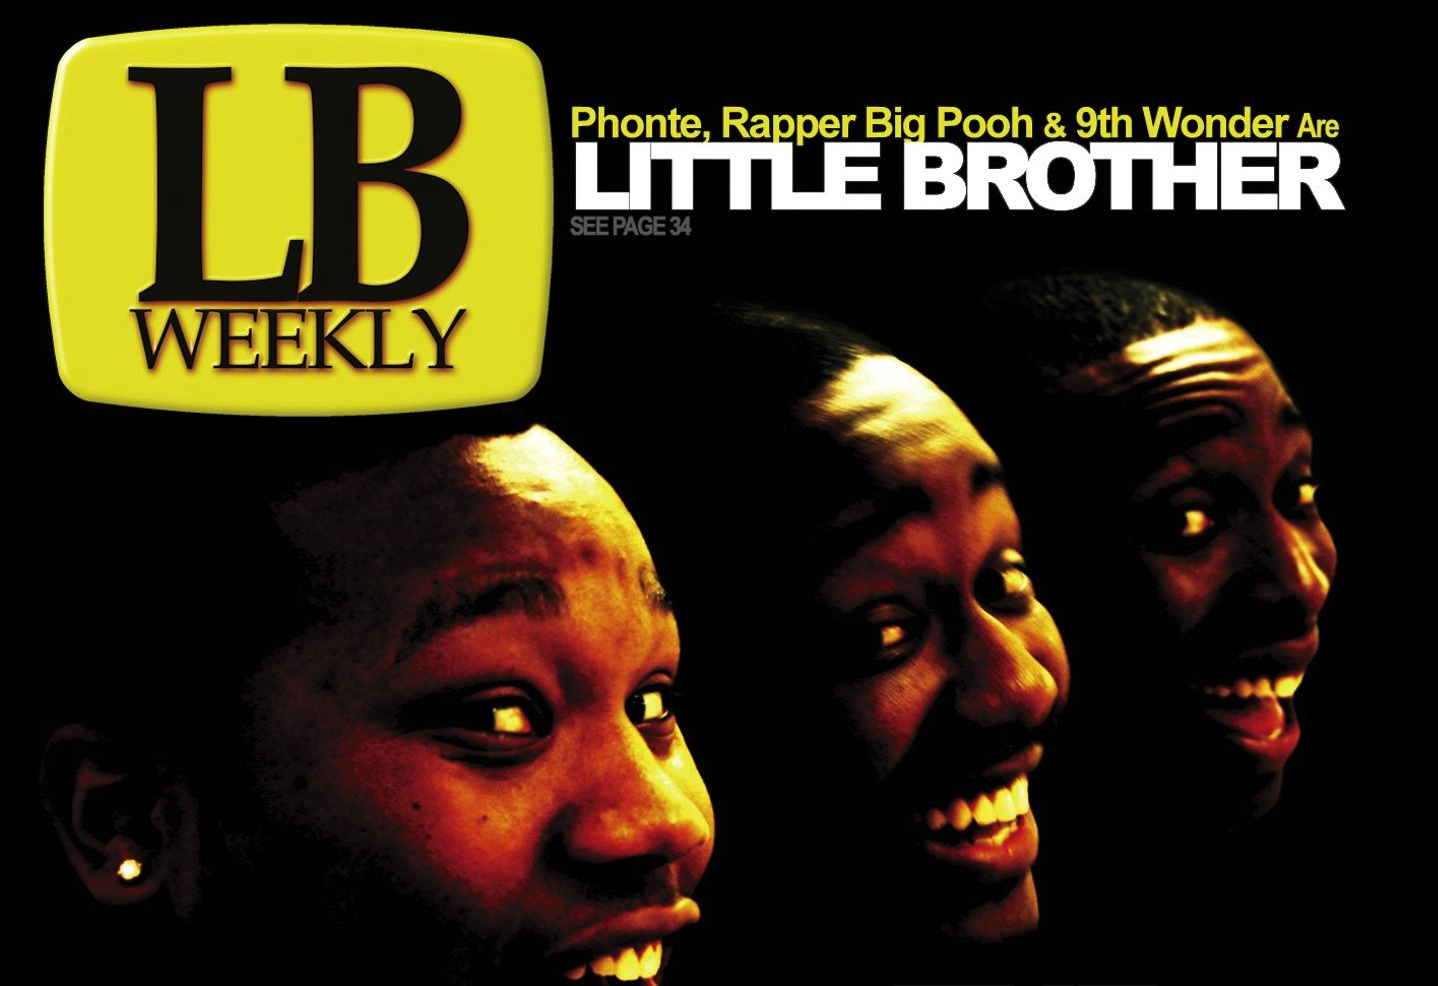 Little Brother The Minstrel show